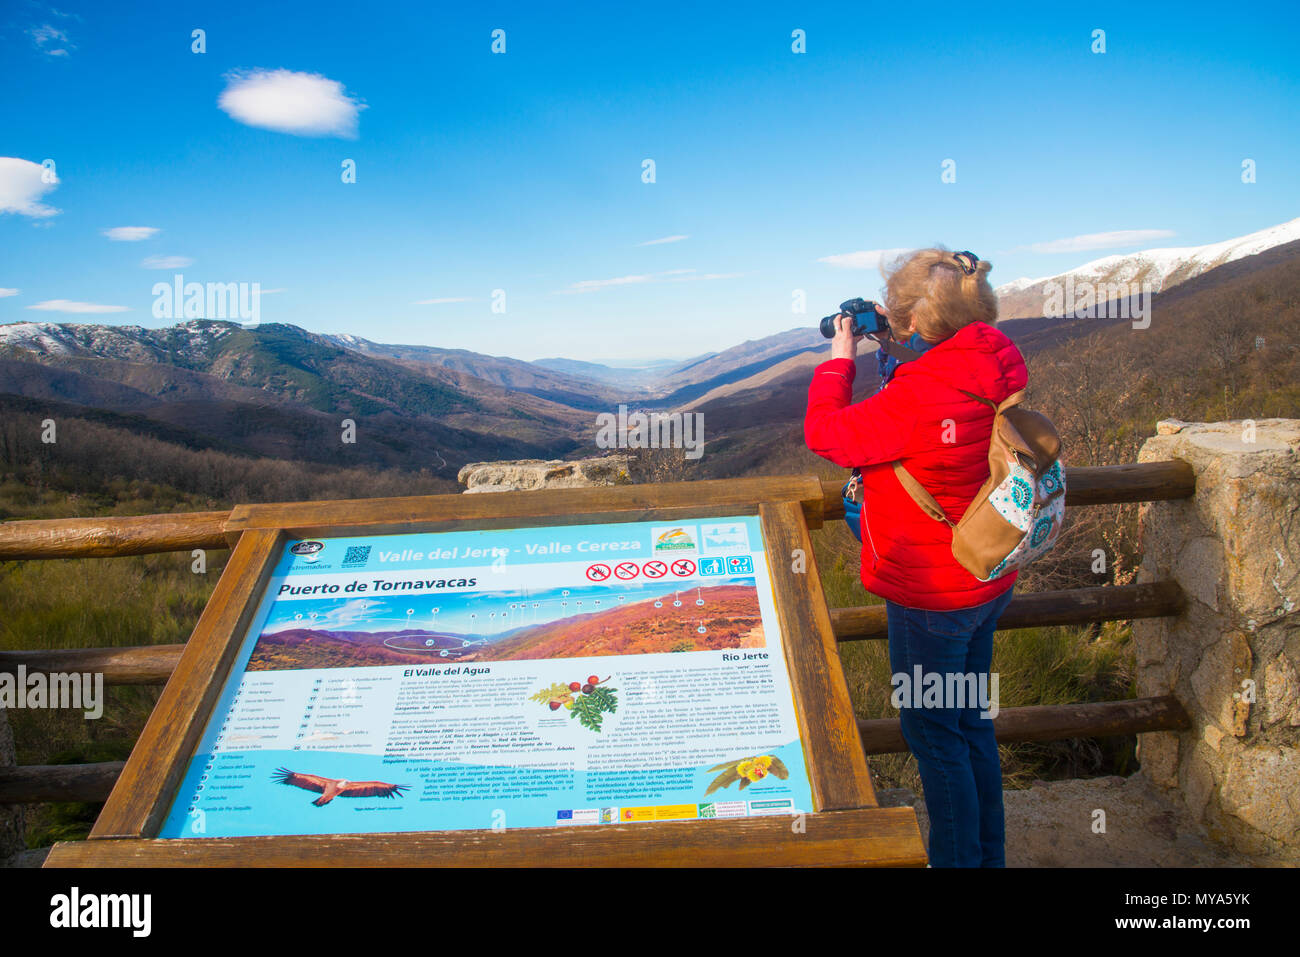 Woman taking photos at the viewpoint. Tornavacas Mountain Pass, Caceres province, Extremadura, Spain. - Stock Image